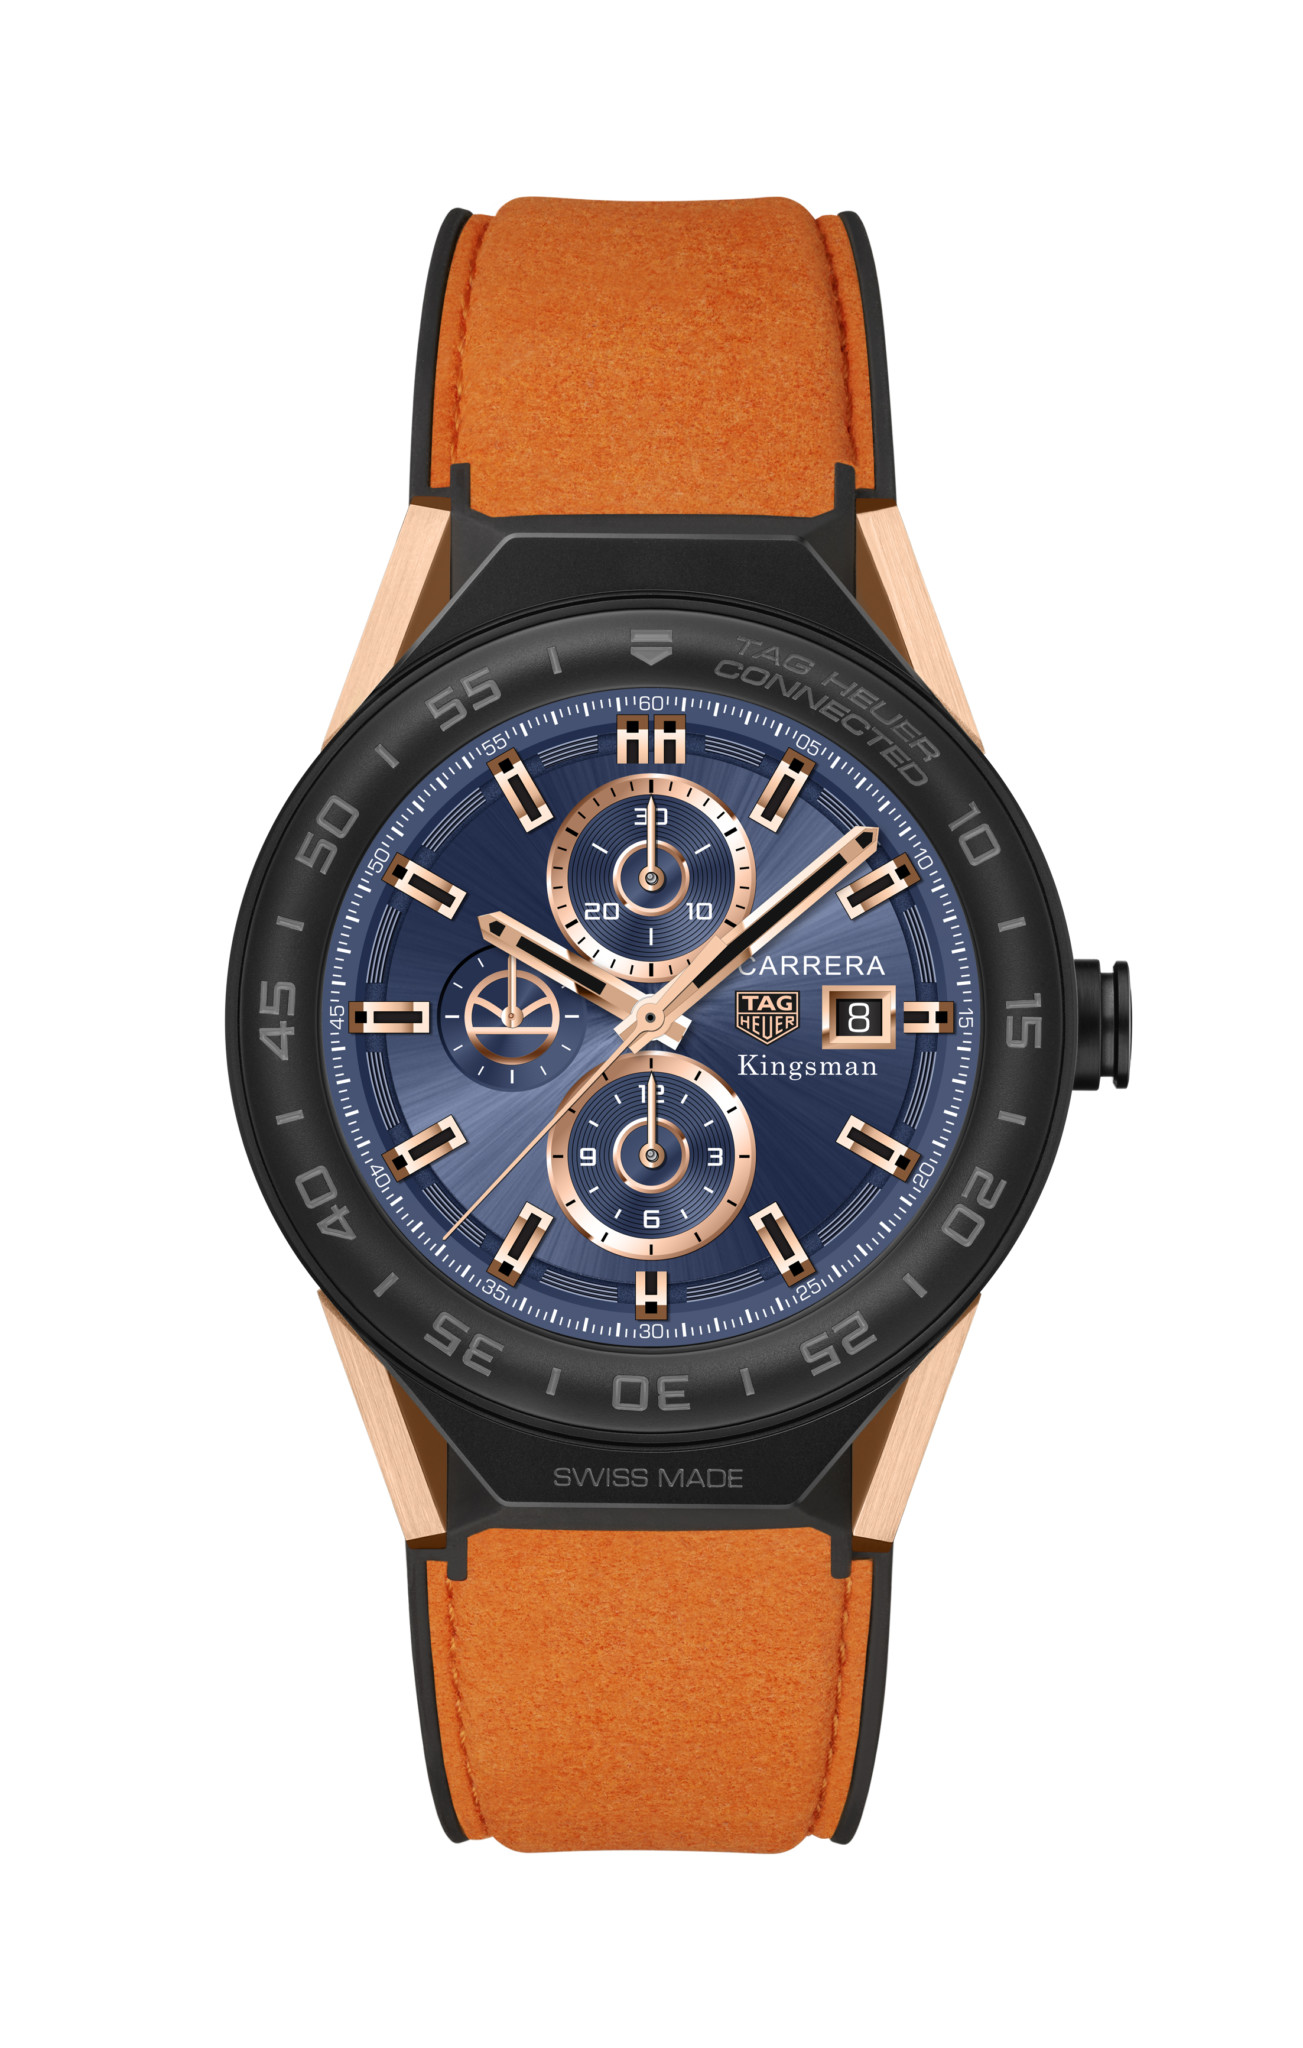 TAG Heuer SBF8A8023.32EB0103 KINGSMAN SPECIAL EDITION - ORANGE ALCANTARA STRAP 2017 HD